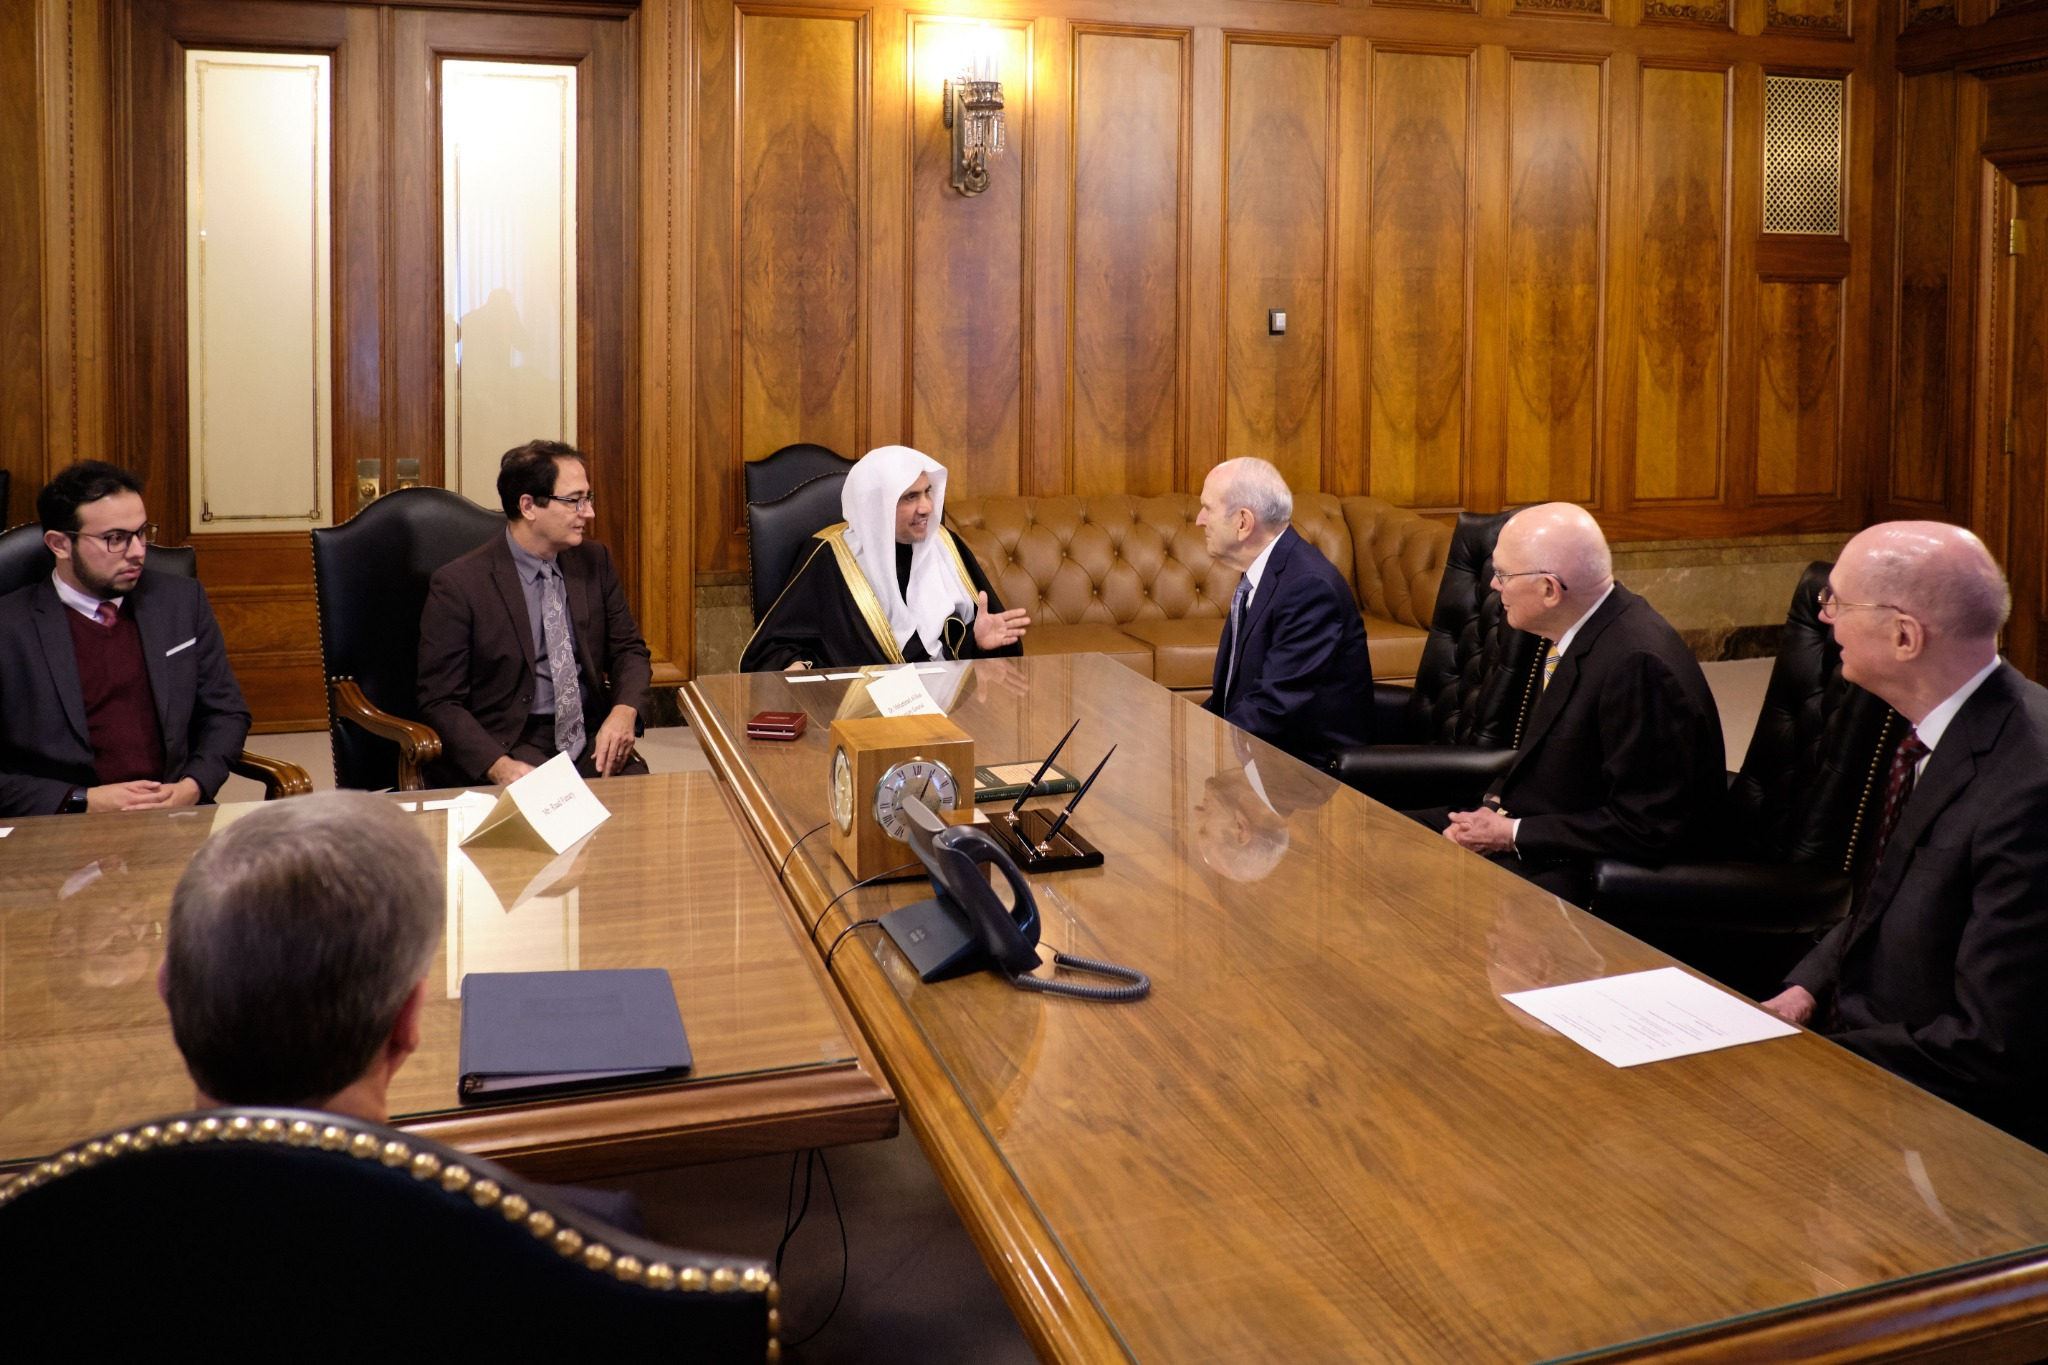 Members of the First Presidency of The Church of Jesus Christ of Latter-day Saints, right, meet His Excellency Dr. Mohammad Al-Issa, secretary-general of the Muslim World League, on Nov. 5, 2019.